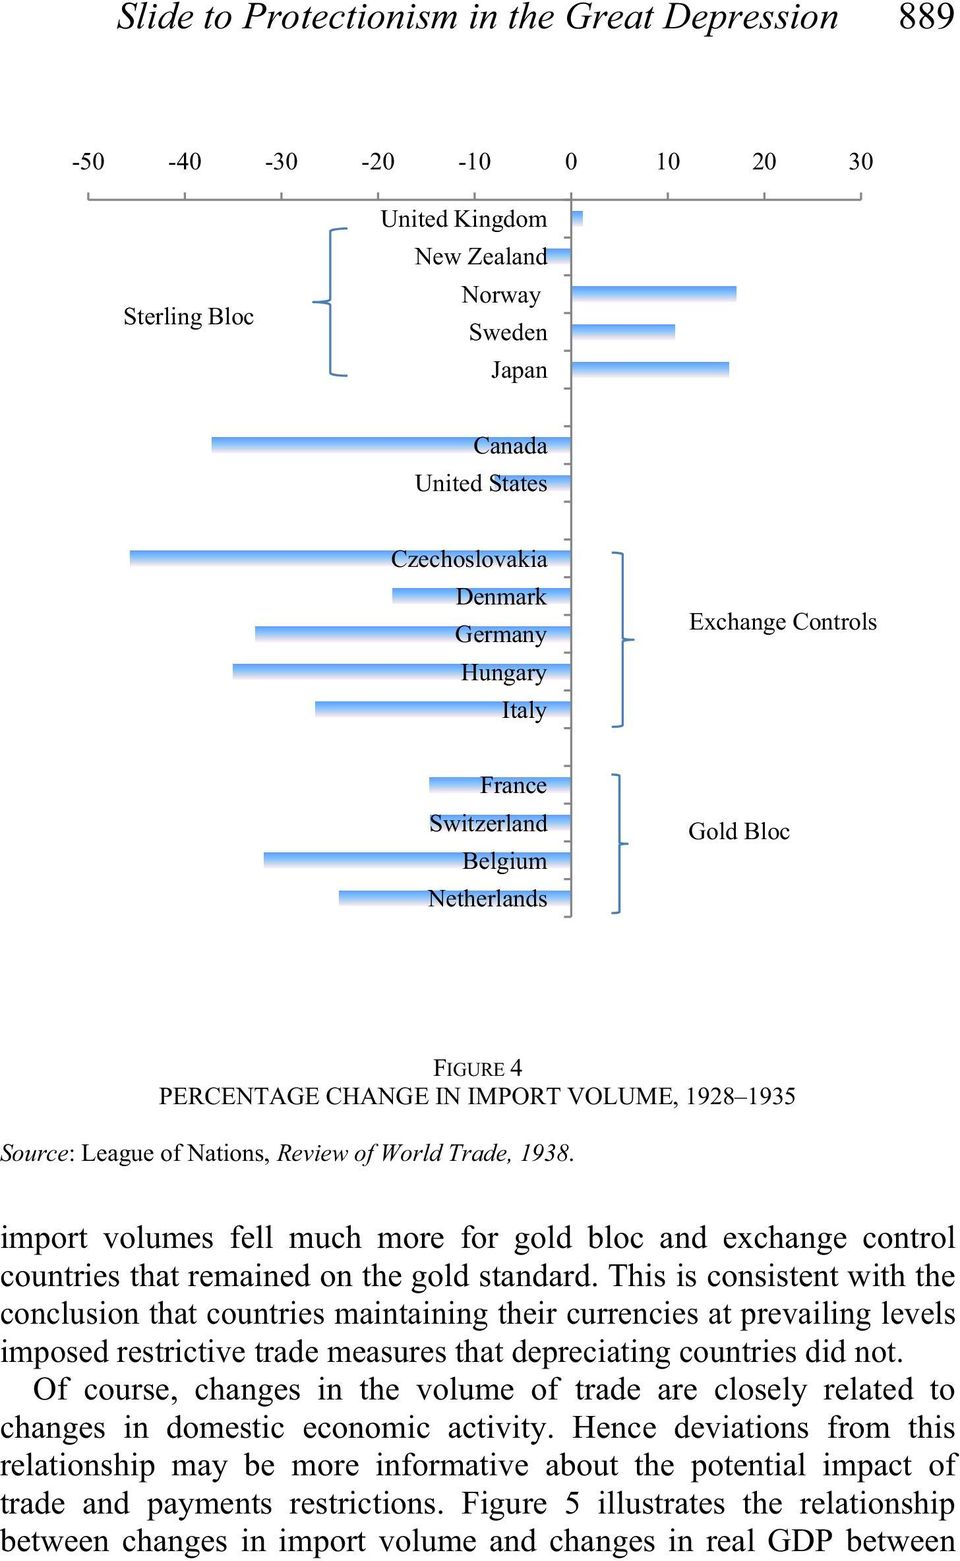 import volumes fell much more for gold bloc and exchange control countries that remained on the gold standard.